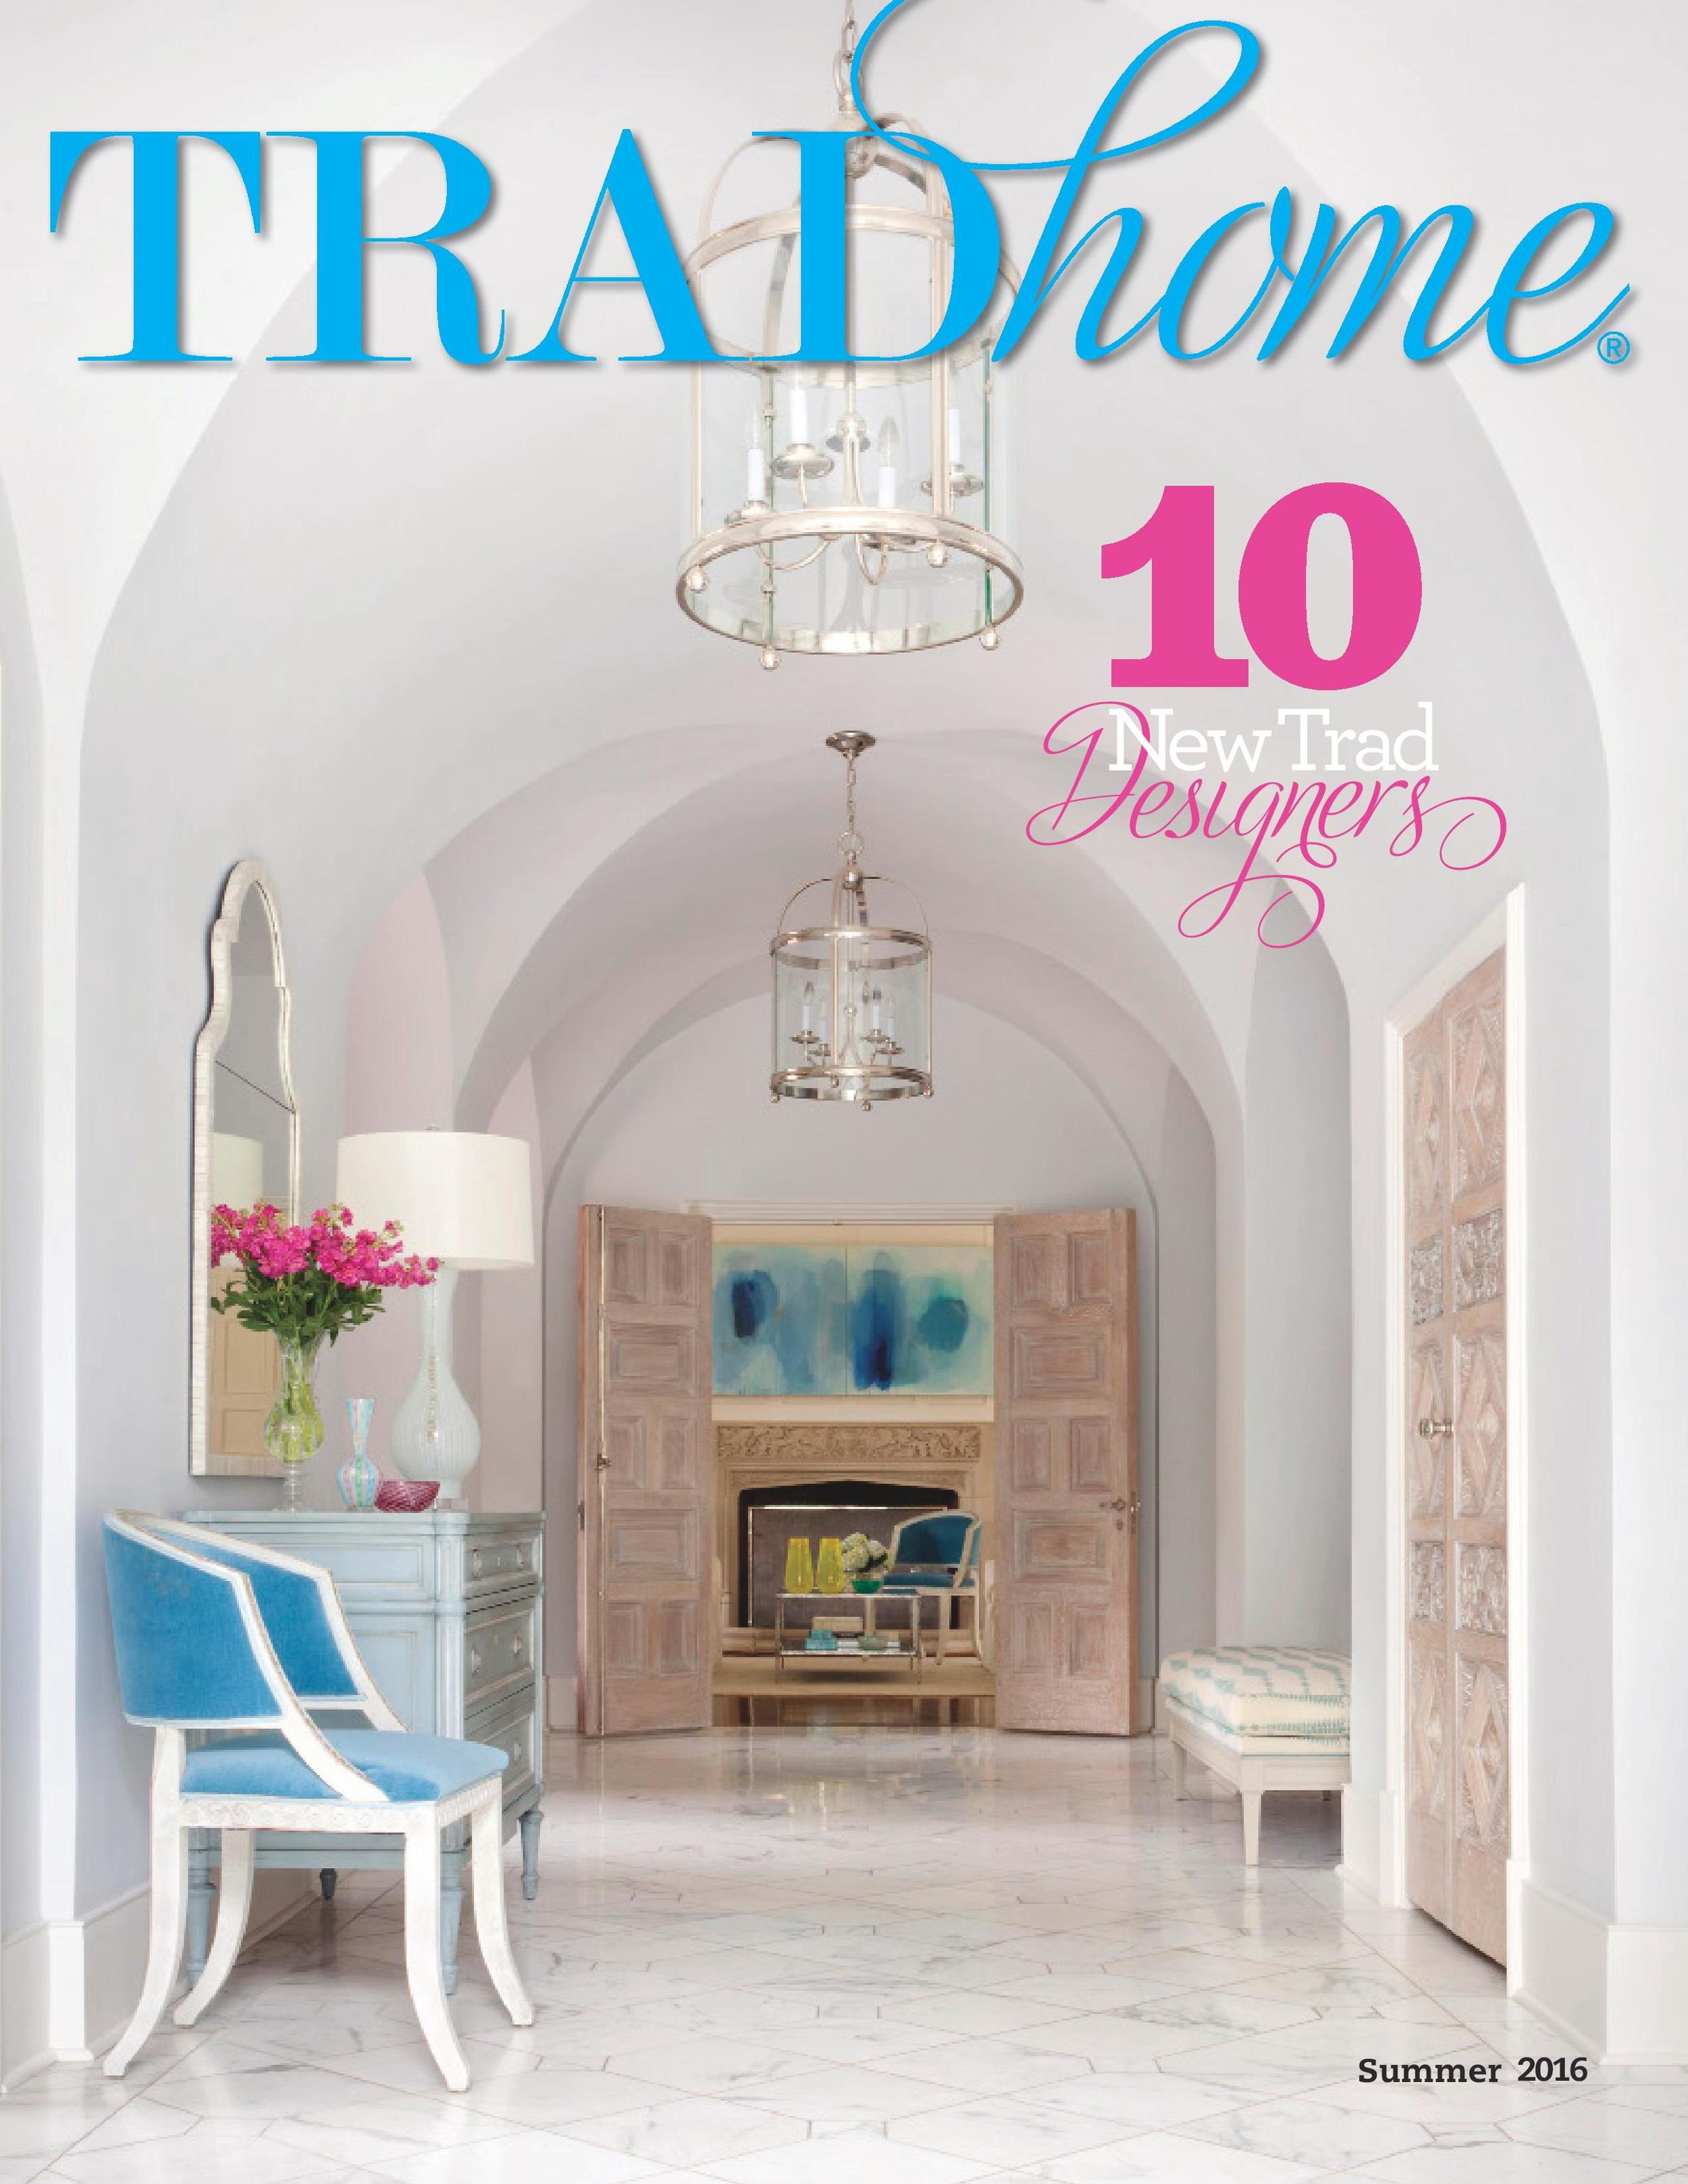 TRADhomeS16_Cover-page-001.jpg